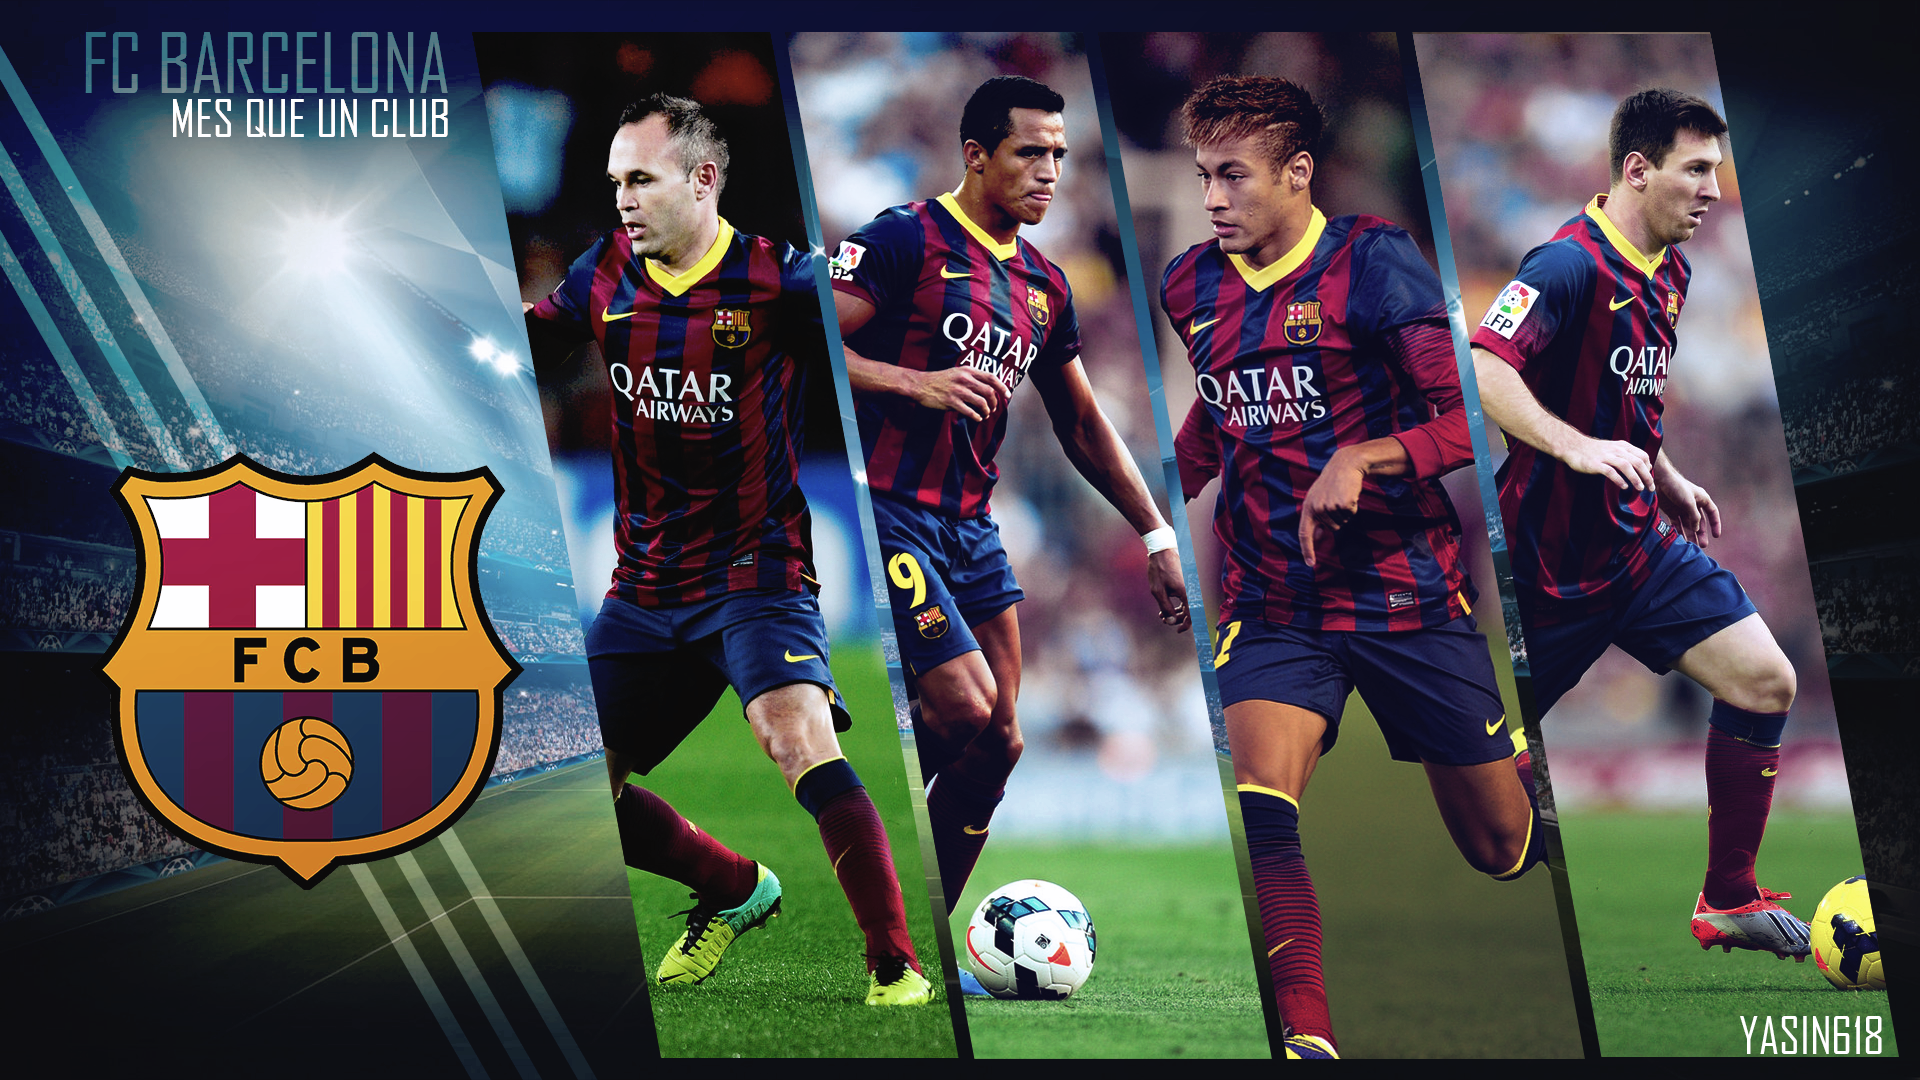 53 best FC Barcelona images on Pinterest   Sports, Messi and Fc ...